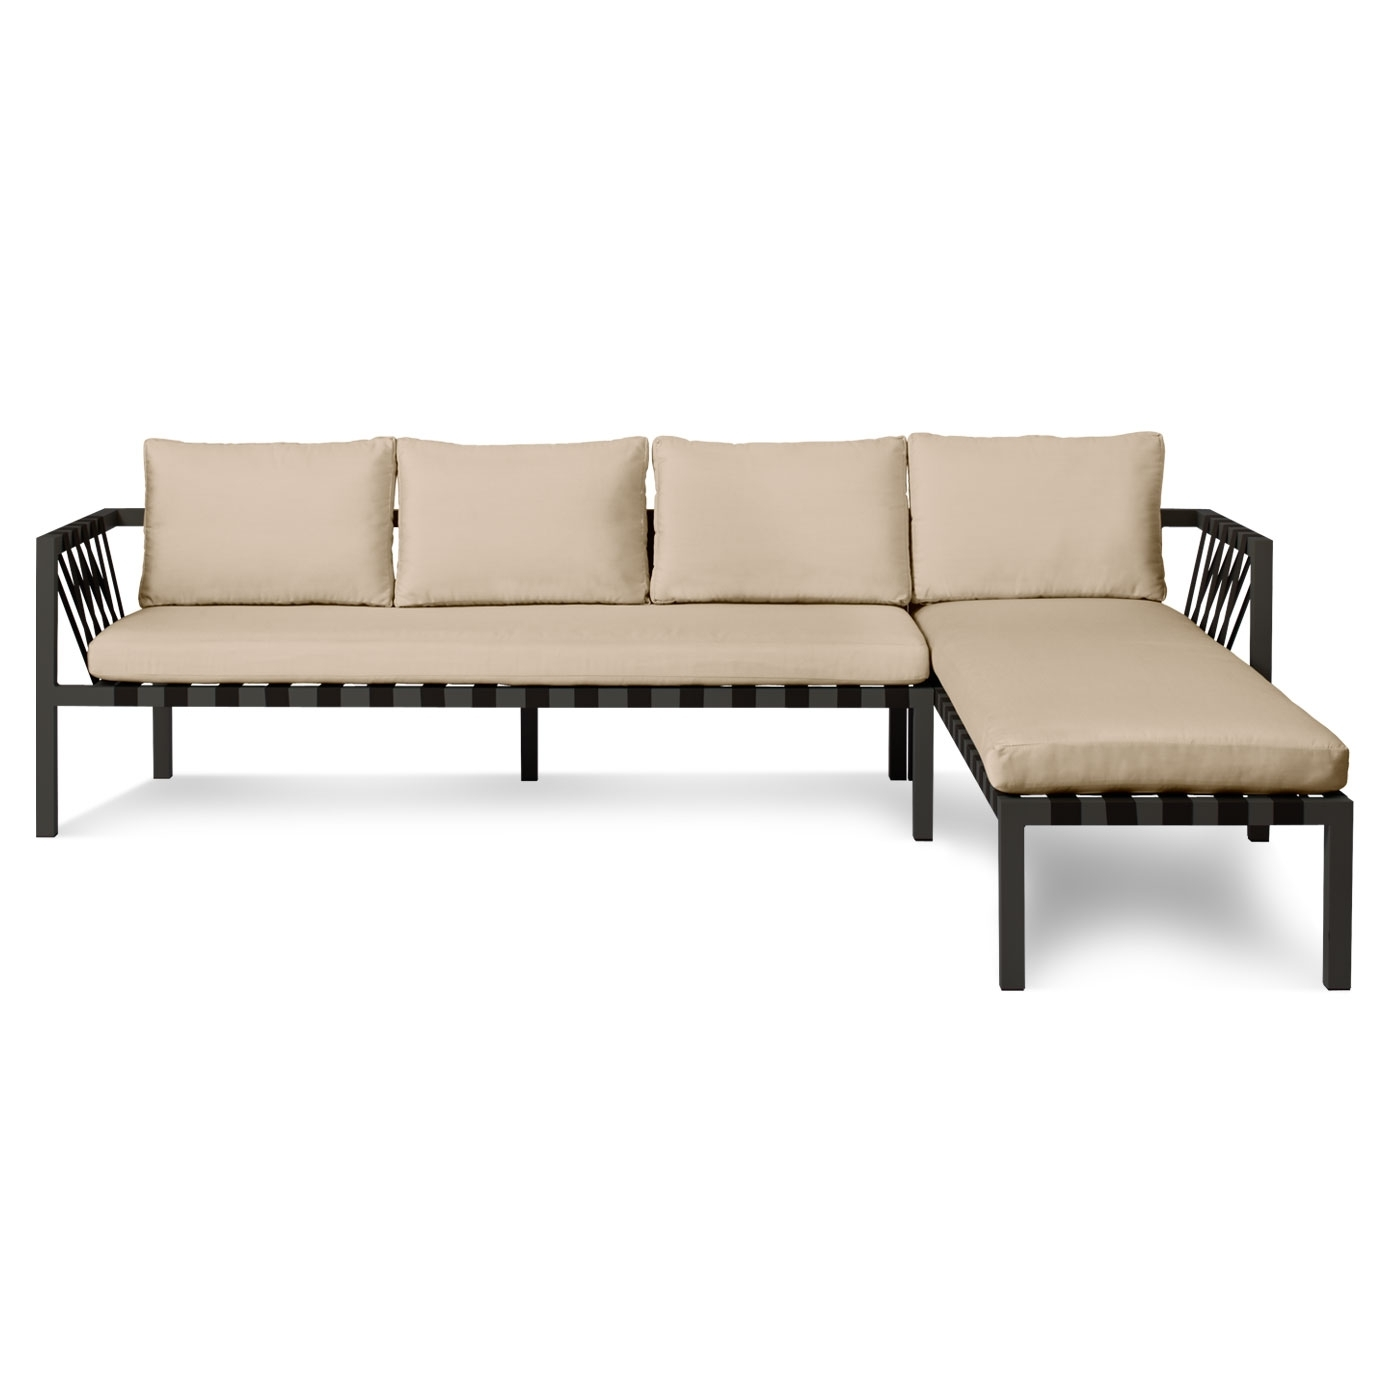 Vt Sectional Sofas With Regard To Most Recent Jibe Outdoor Sectional Sofa – Left Sectionals (View 20 of 21)